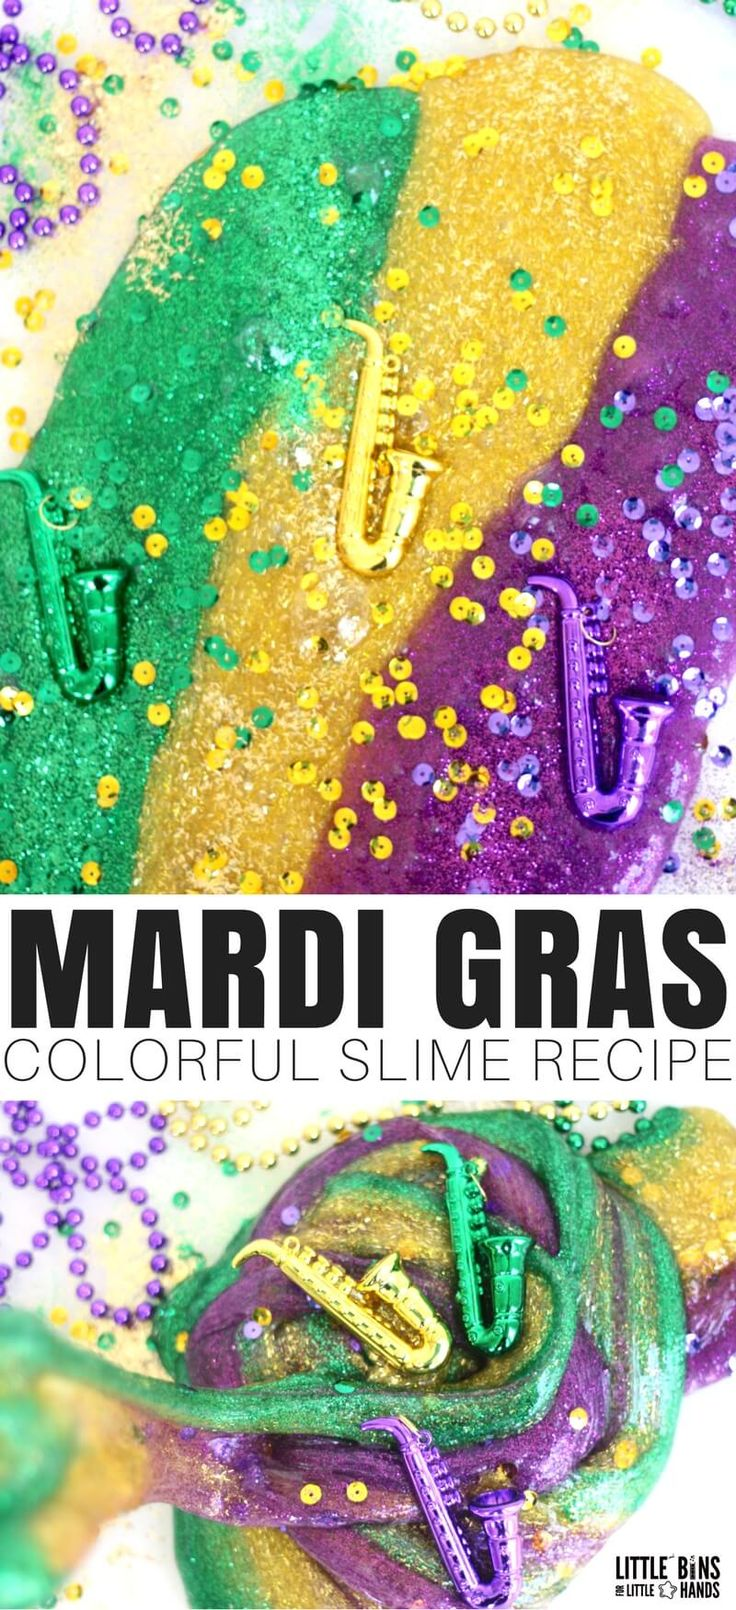 How To Make Mardi Gras Slime Recipe! Learn how to make colorful Mardi Gras slime with our easy to make slime recipes. Homemade slime recipes are a blast when you have the best ones! Making slime is easy and perfect to go with an holiday, season, or special occasion.